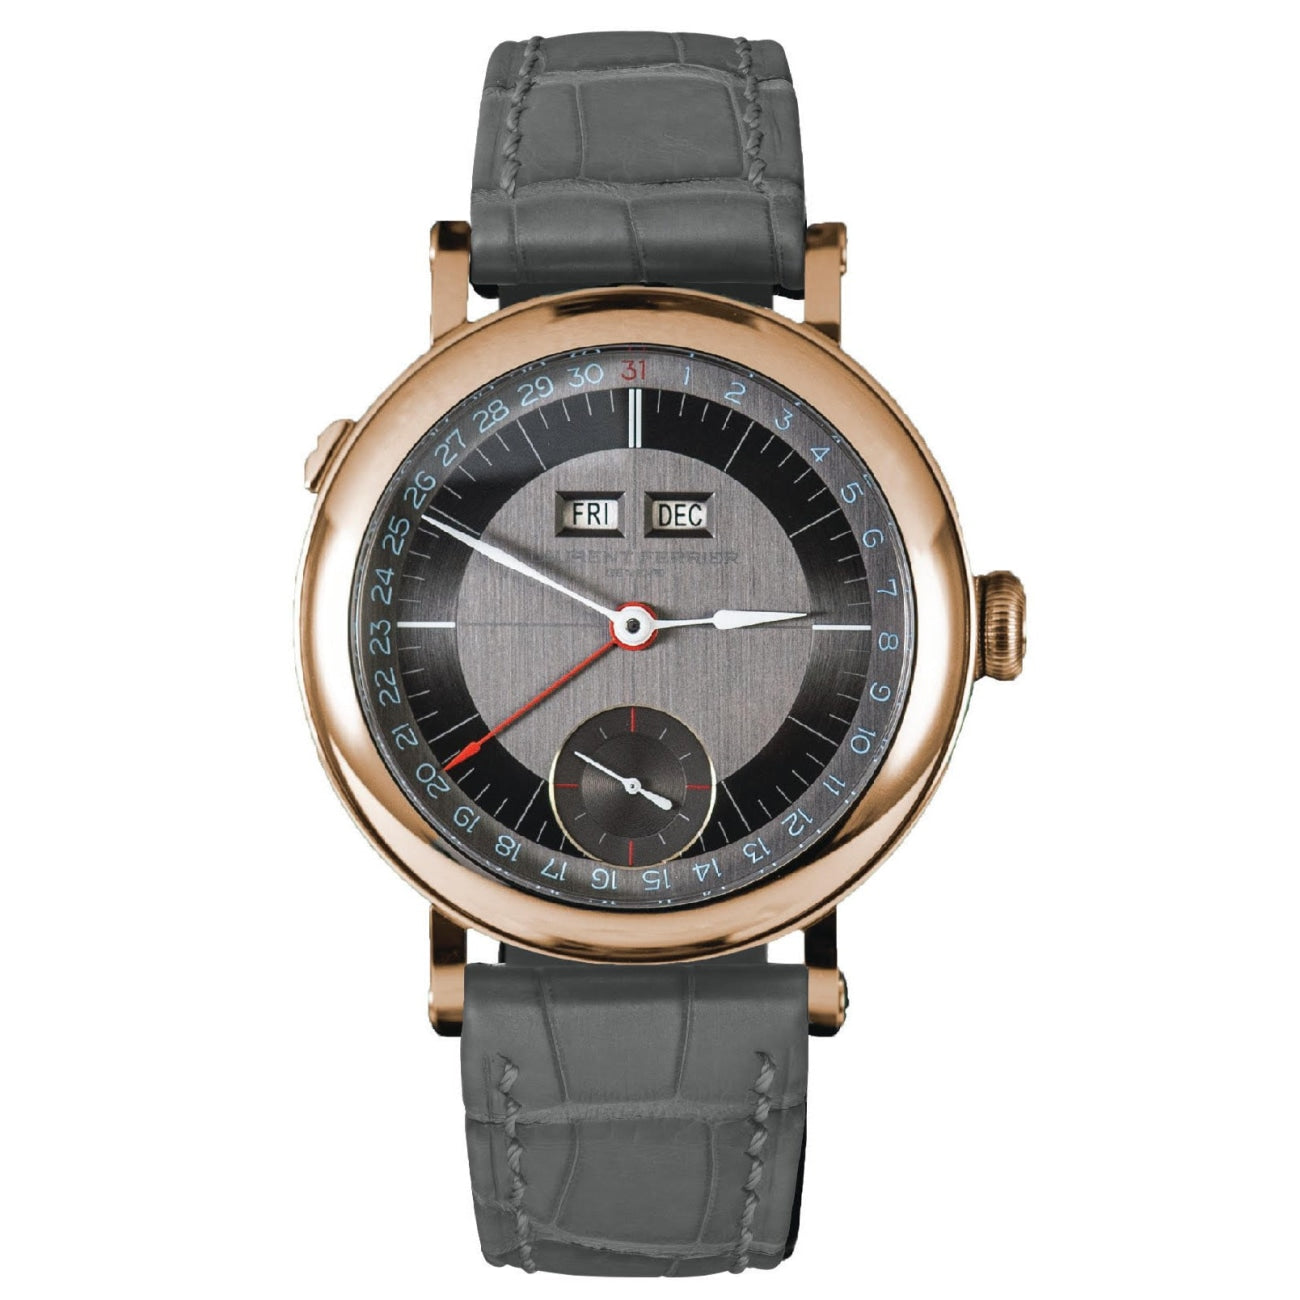 Laurent Ferrier Watches - Galet Annual Calendar Montre Ecole | Manfredi Jewels